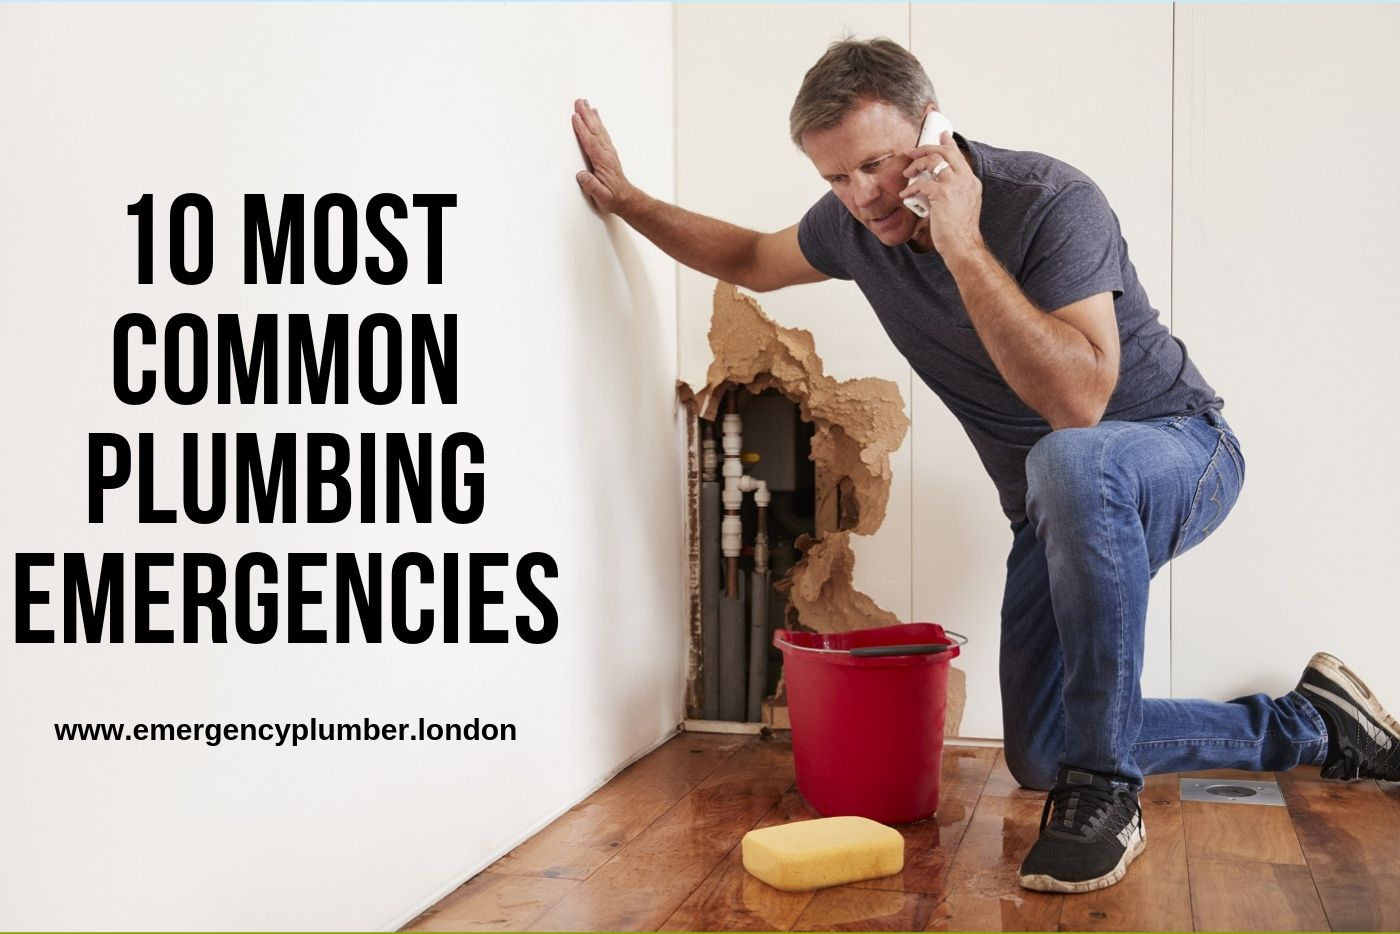 10 Most Common Plumbing Emergencies - Emergency Plumber London